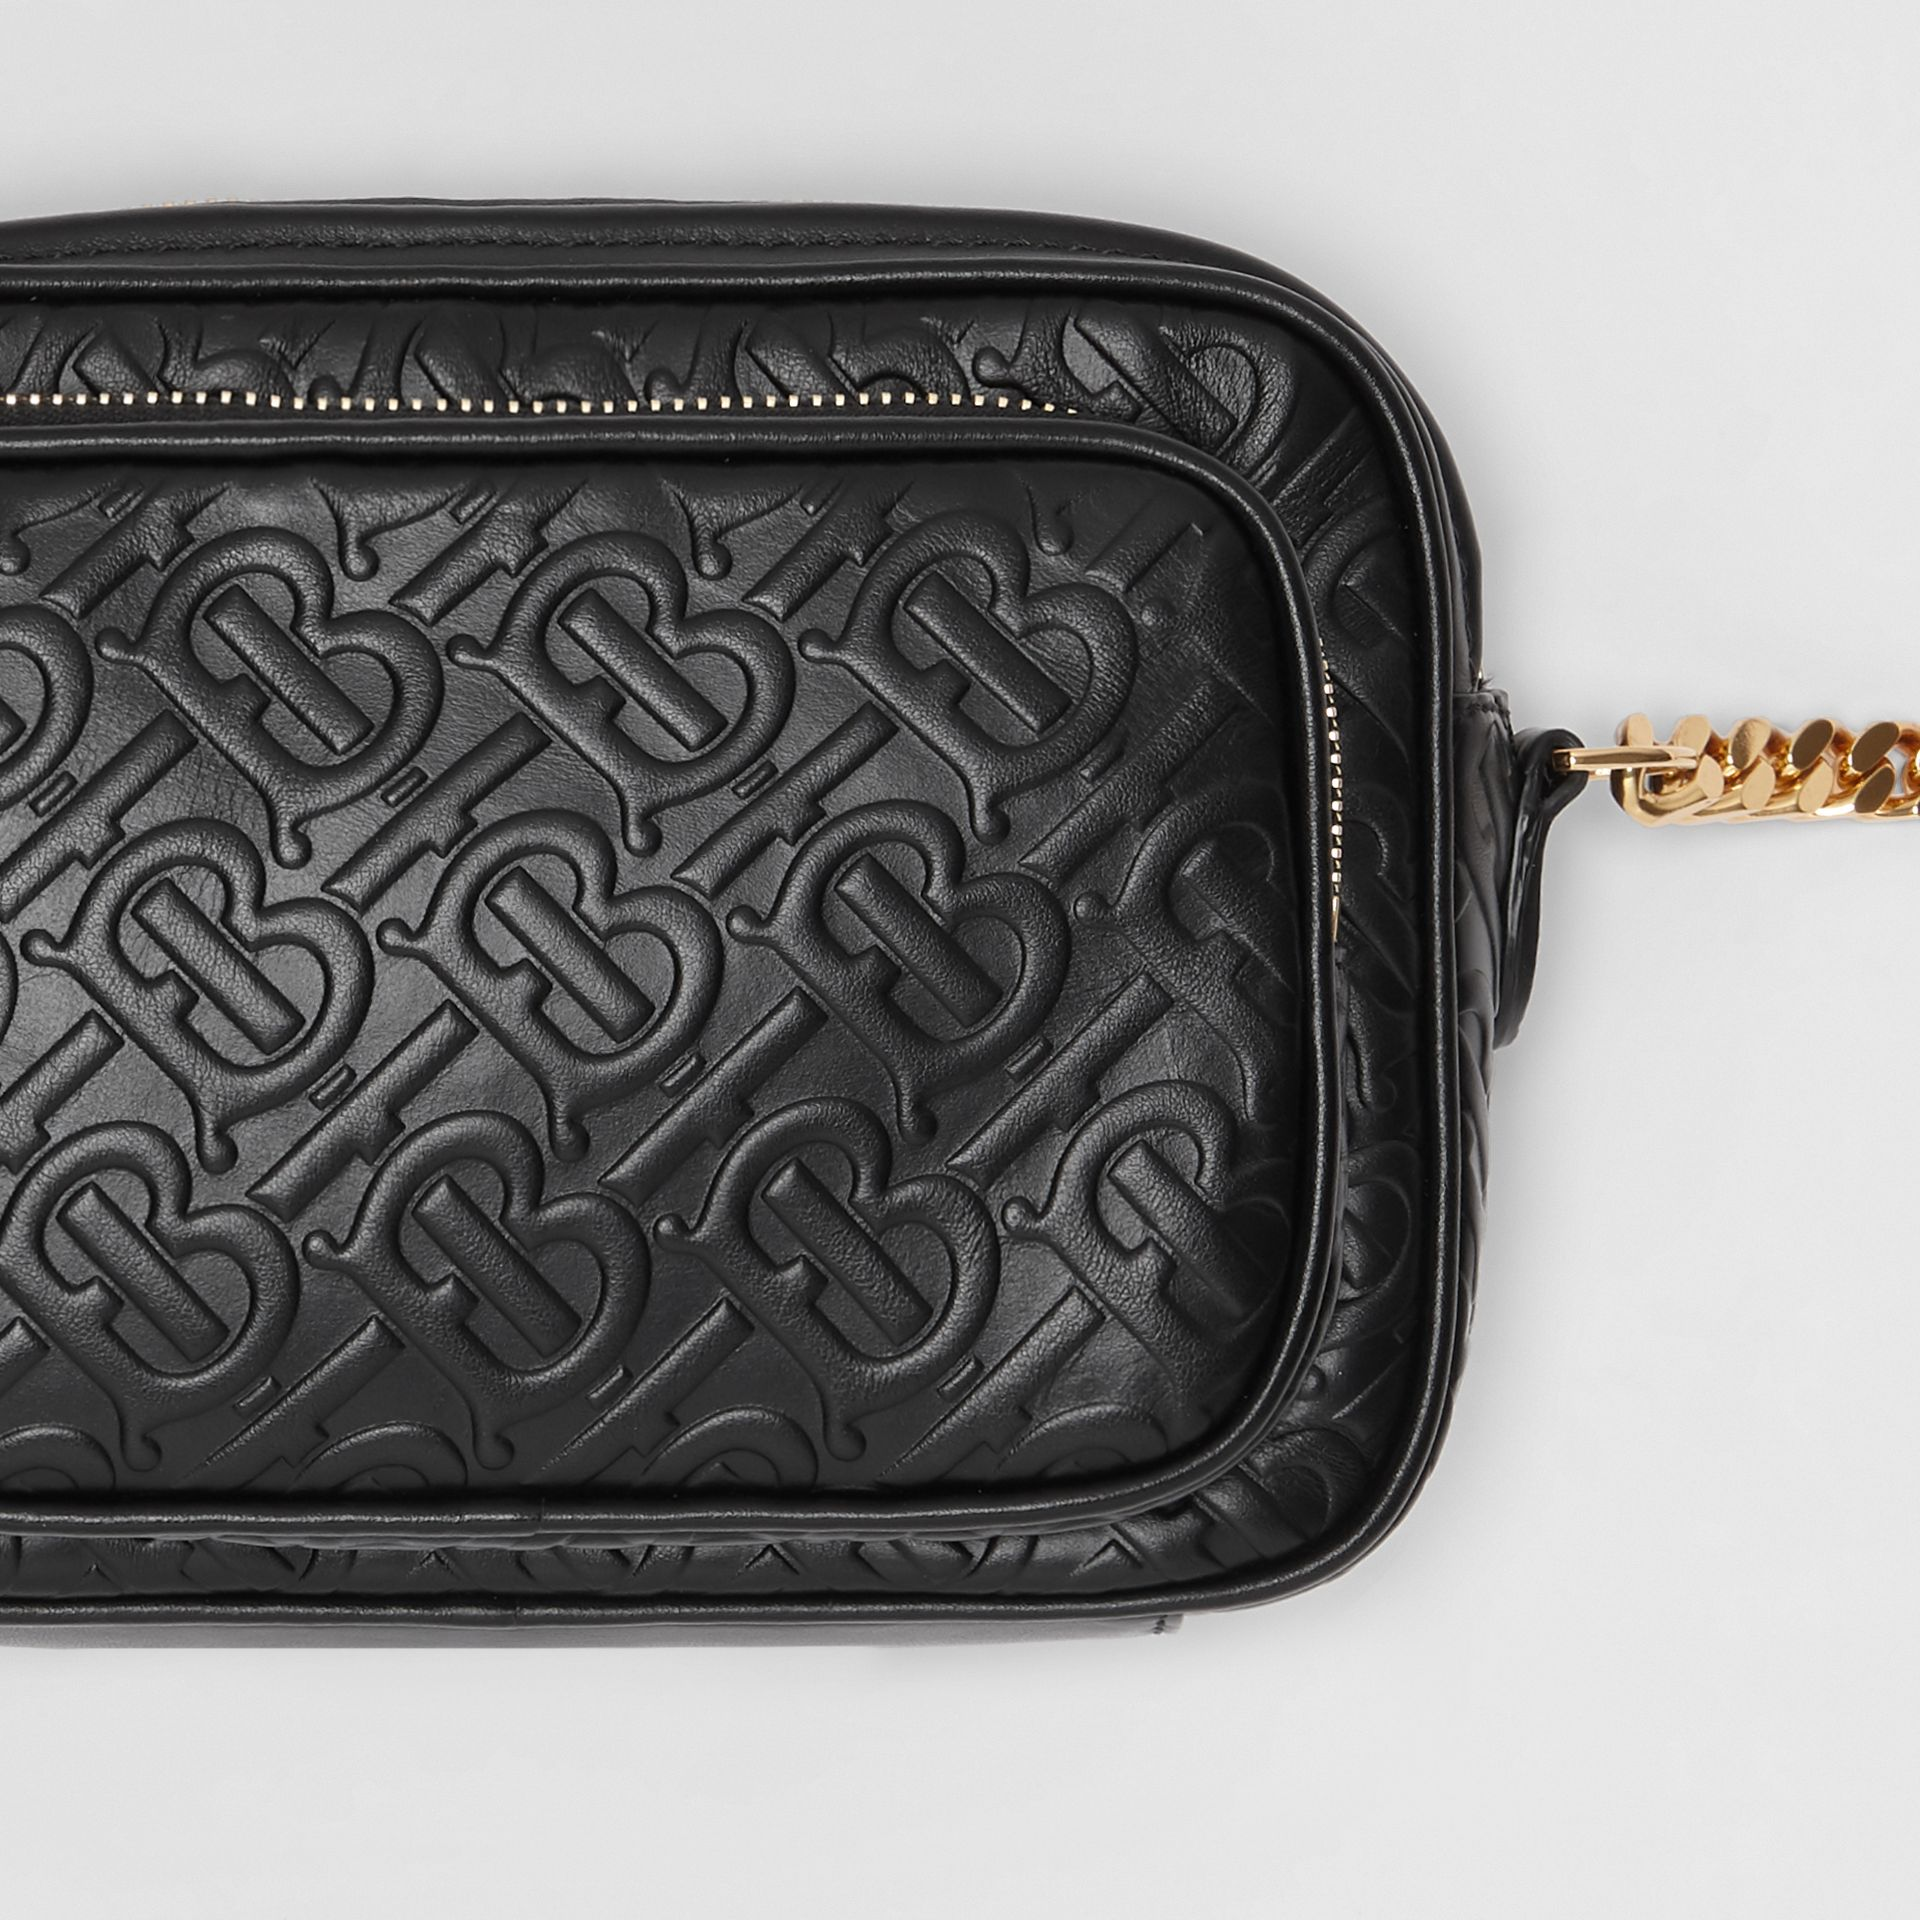 Monogram Leather Camera Bag in Black - Women | Burberry - gallery image 1